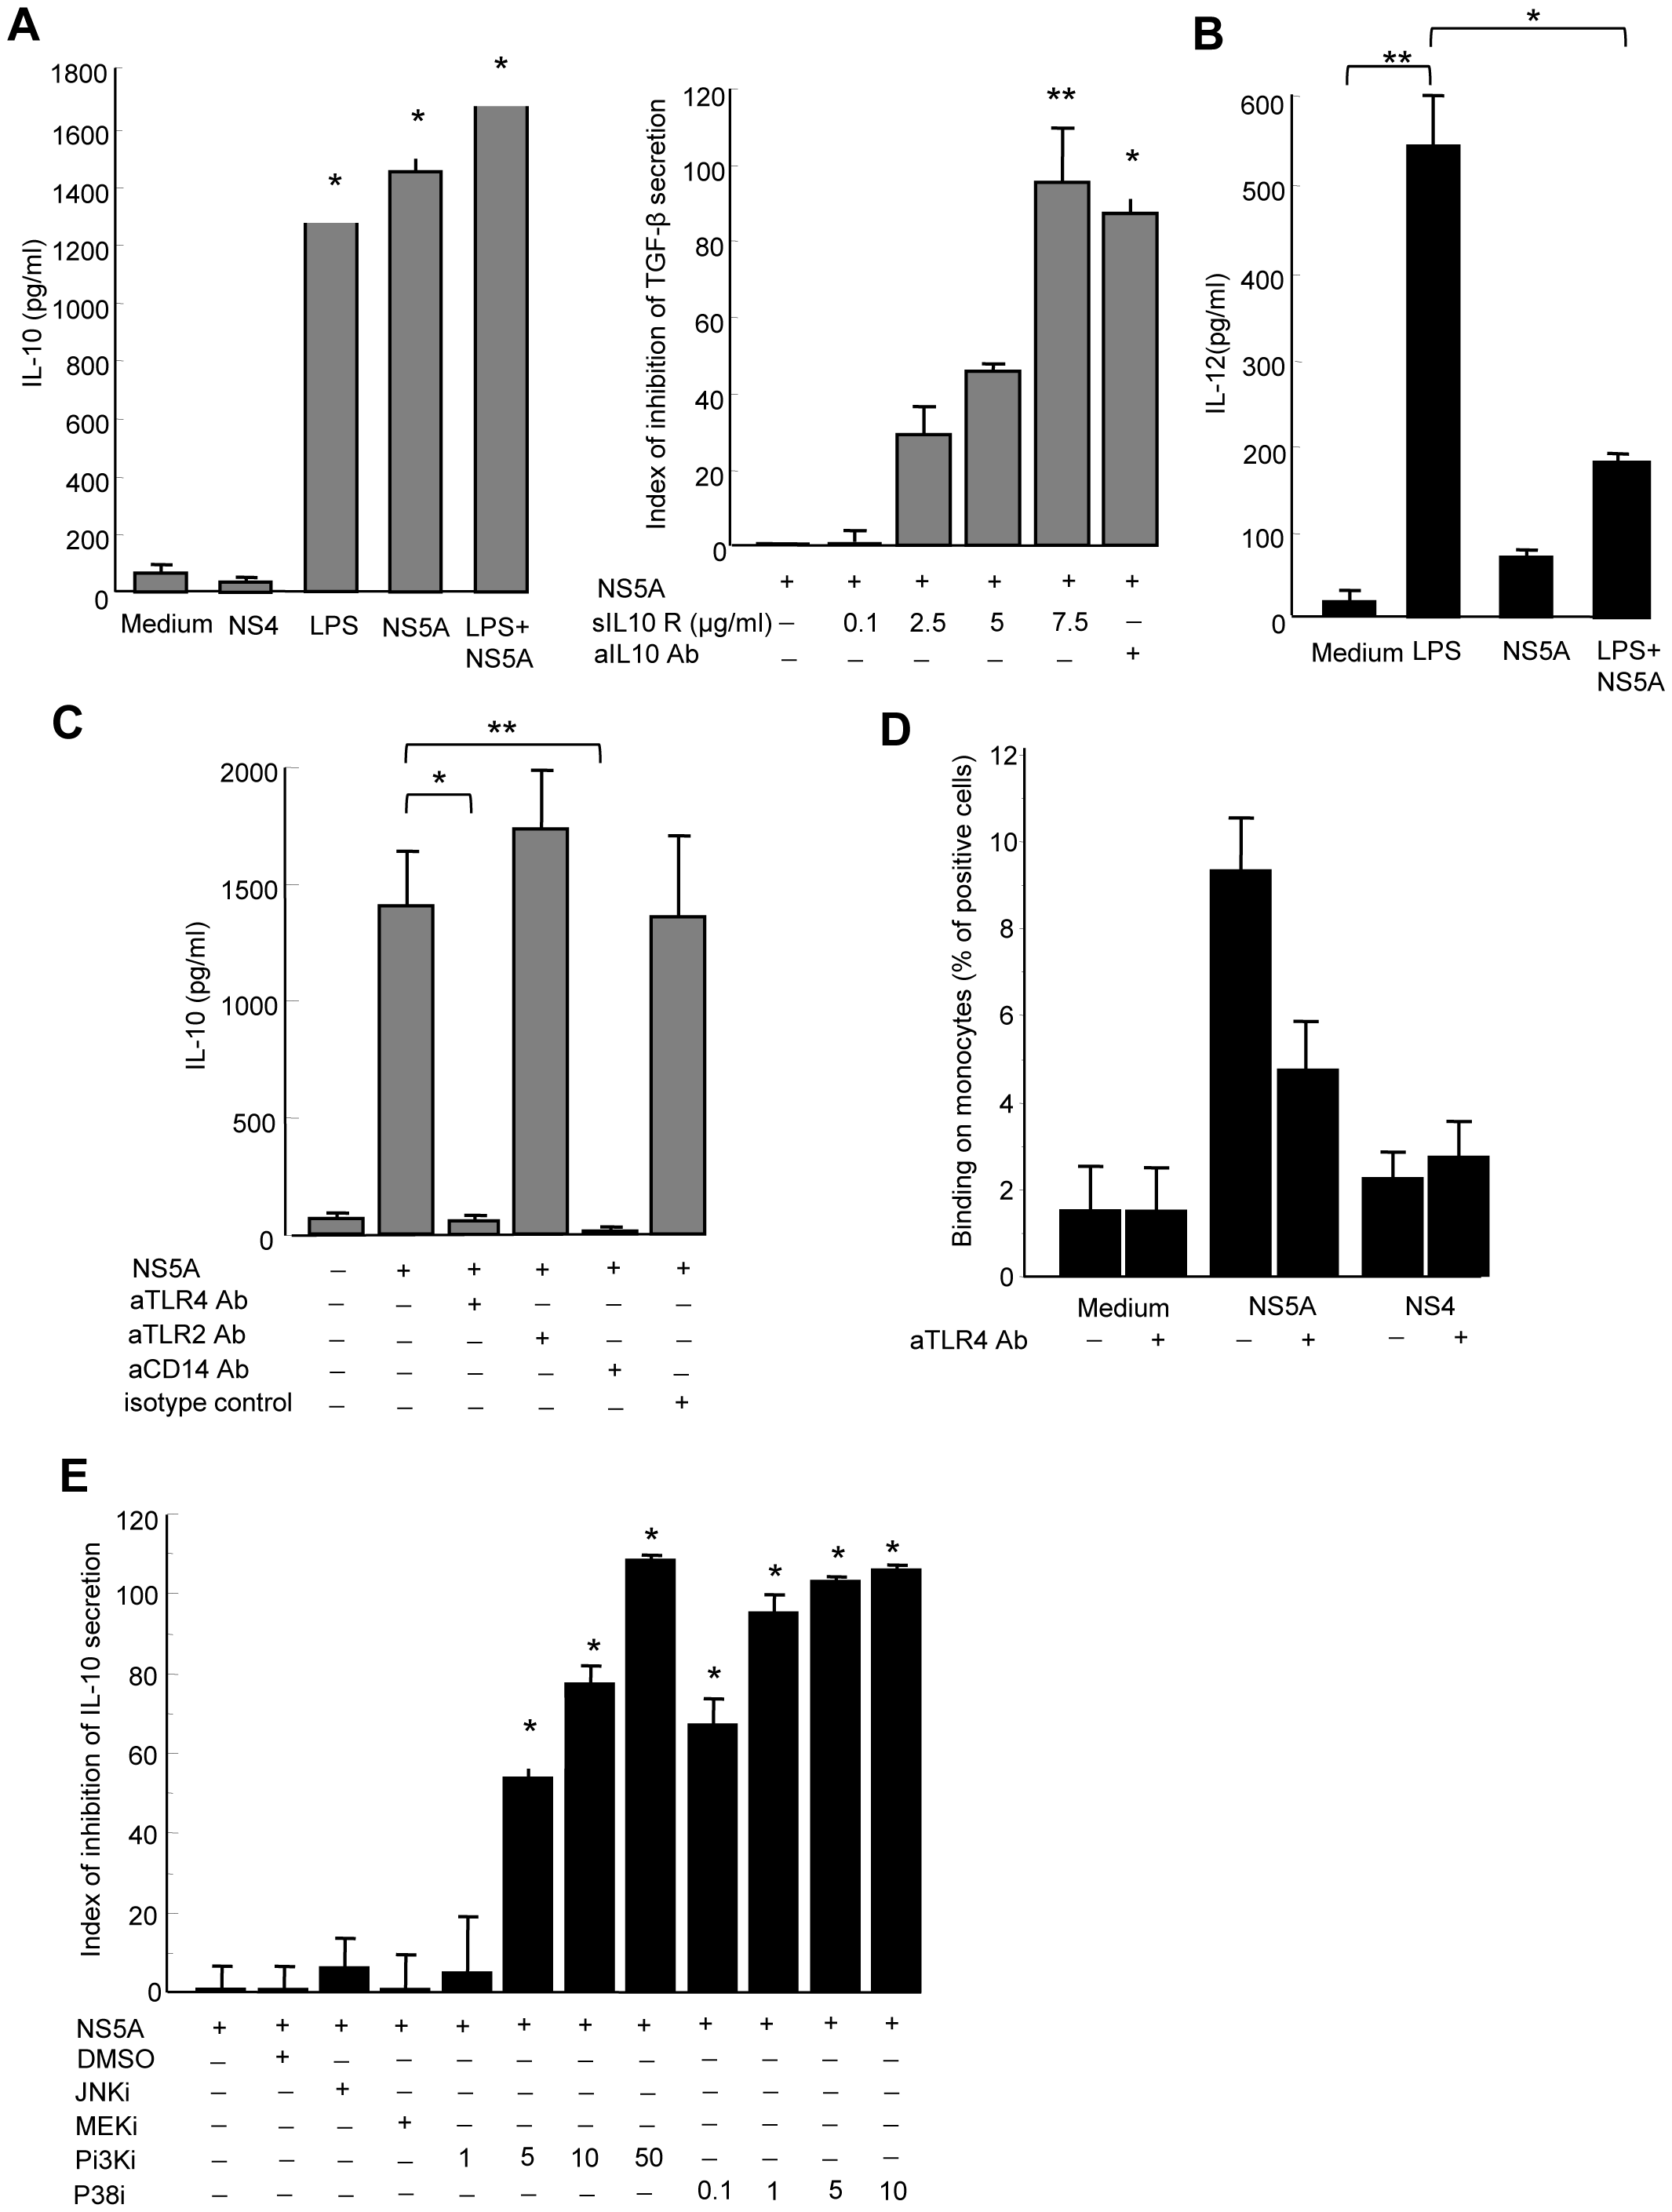 NS5A induces IL-10 and suppresses IL-12 production by monocytes through TLR4-mediated activation of p38 and PI3 kinase signaling.